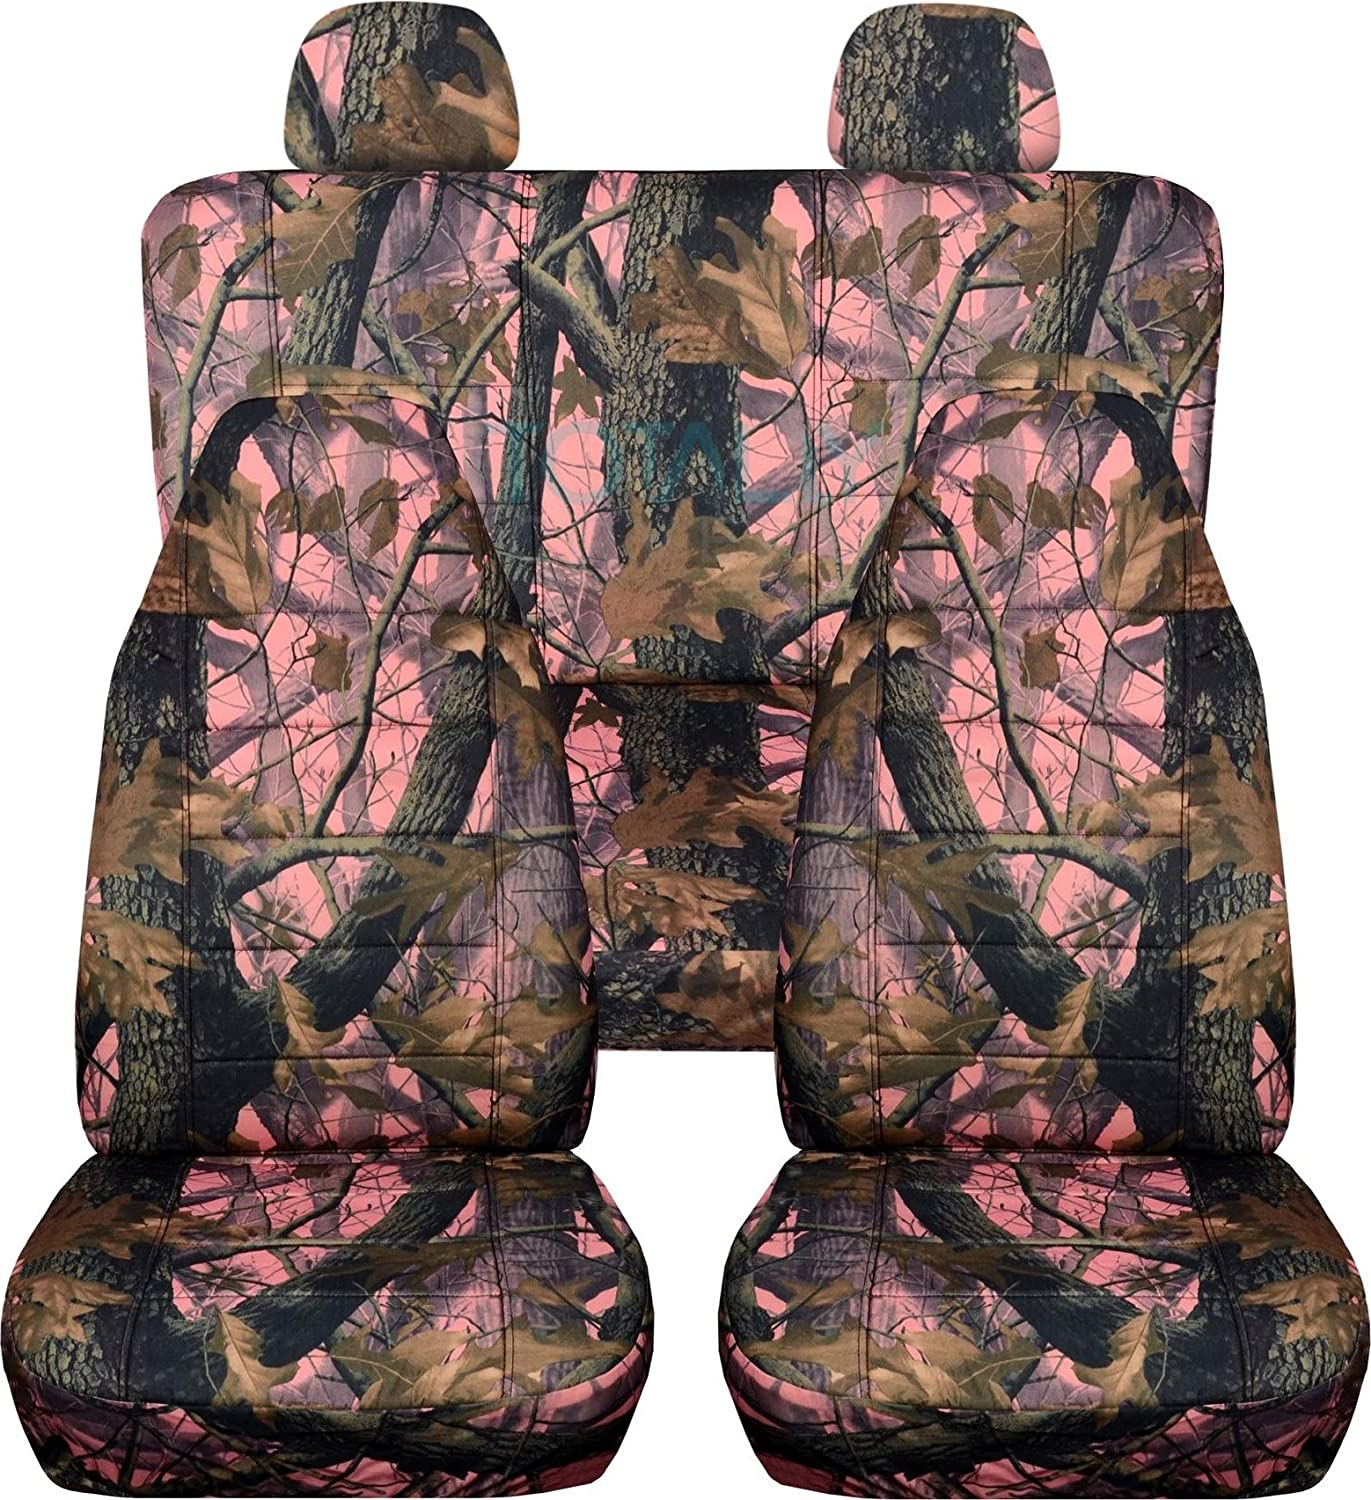 Totally Covers Camouflage Car Seat Covers w 2 Rear Headrest: Pink Tree Camo Universal Fit Full Set Front Buckets & Rear Bench Option for Airbag/Seat Belt/Armrest/Release/Lever/Split Compatible